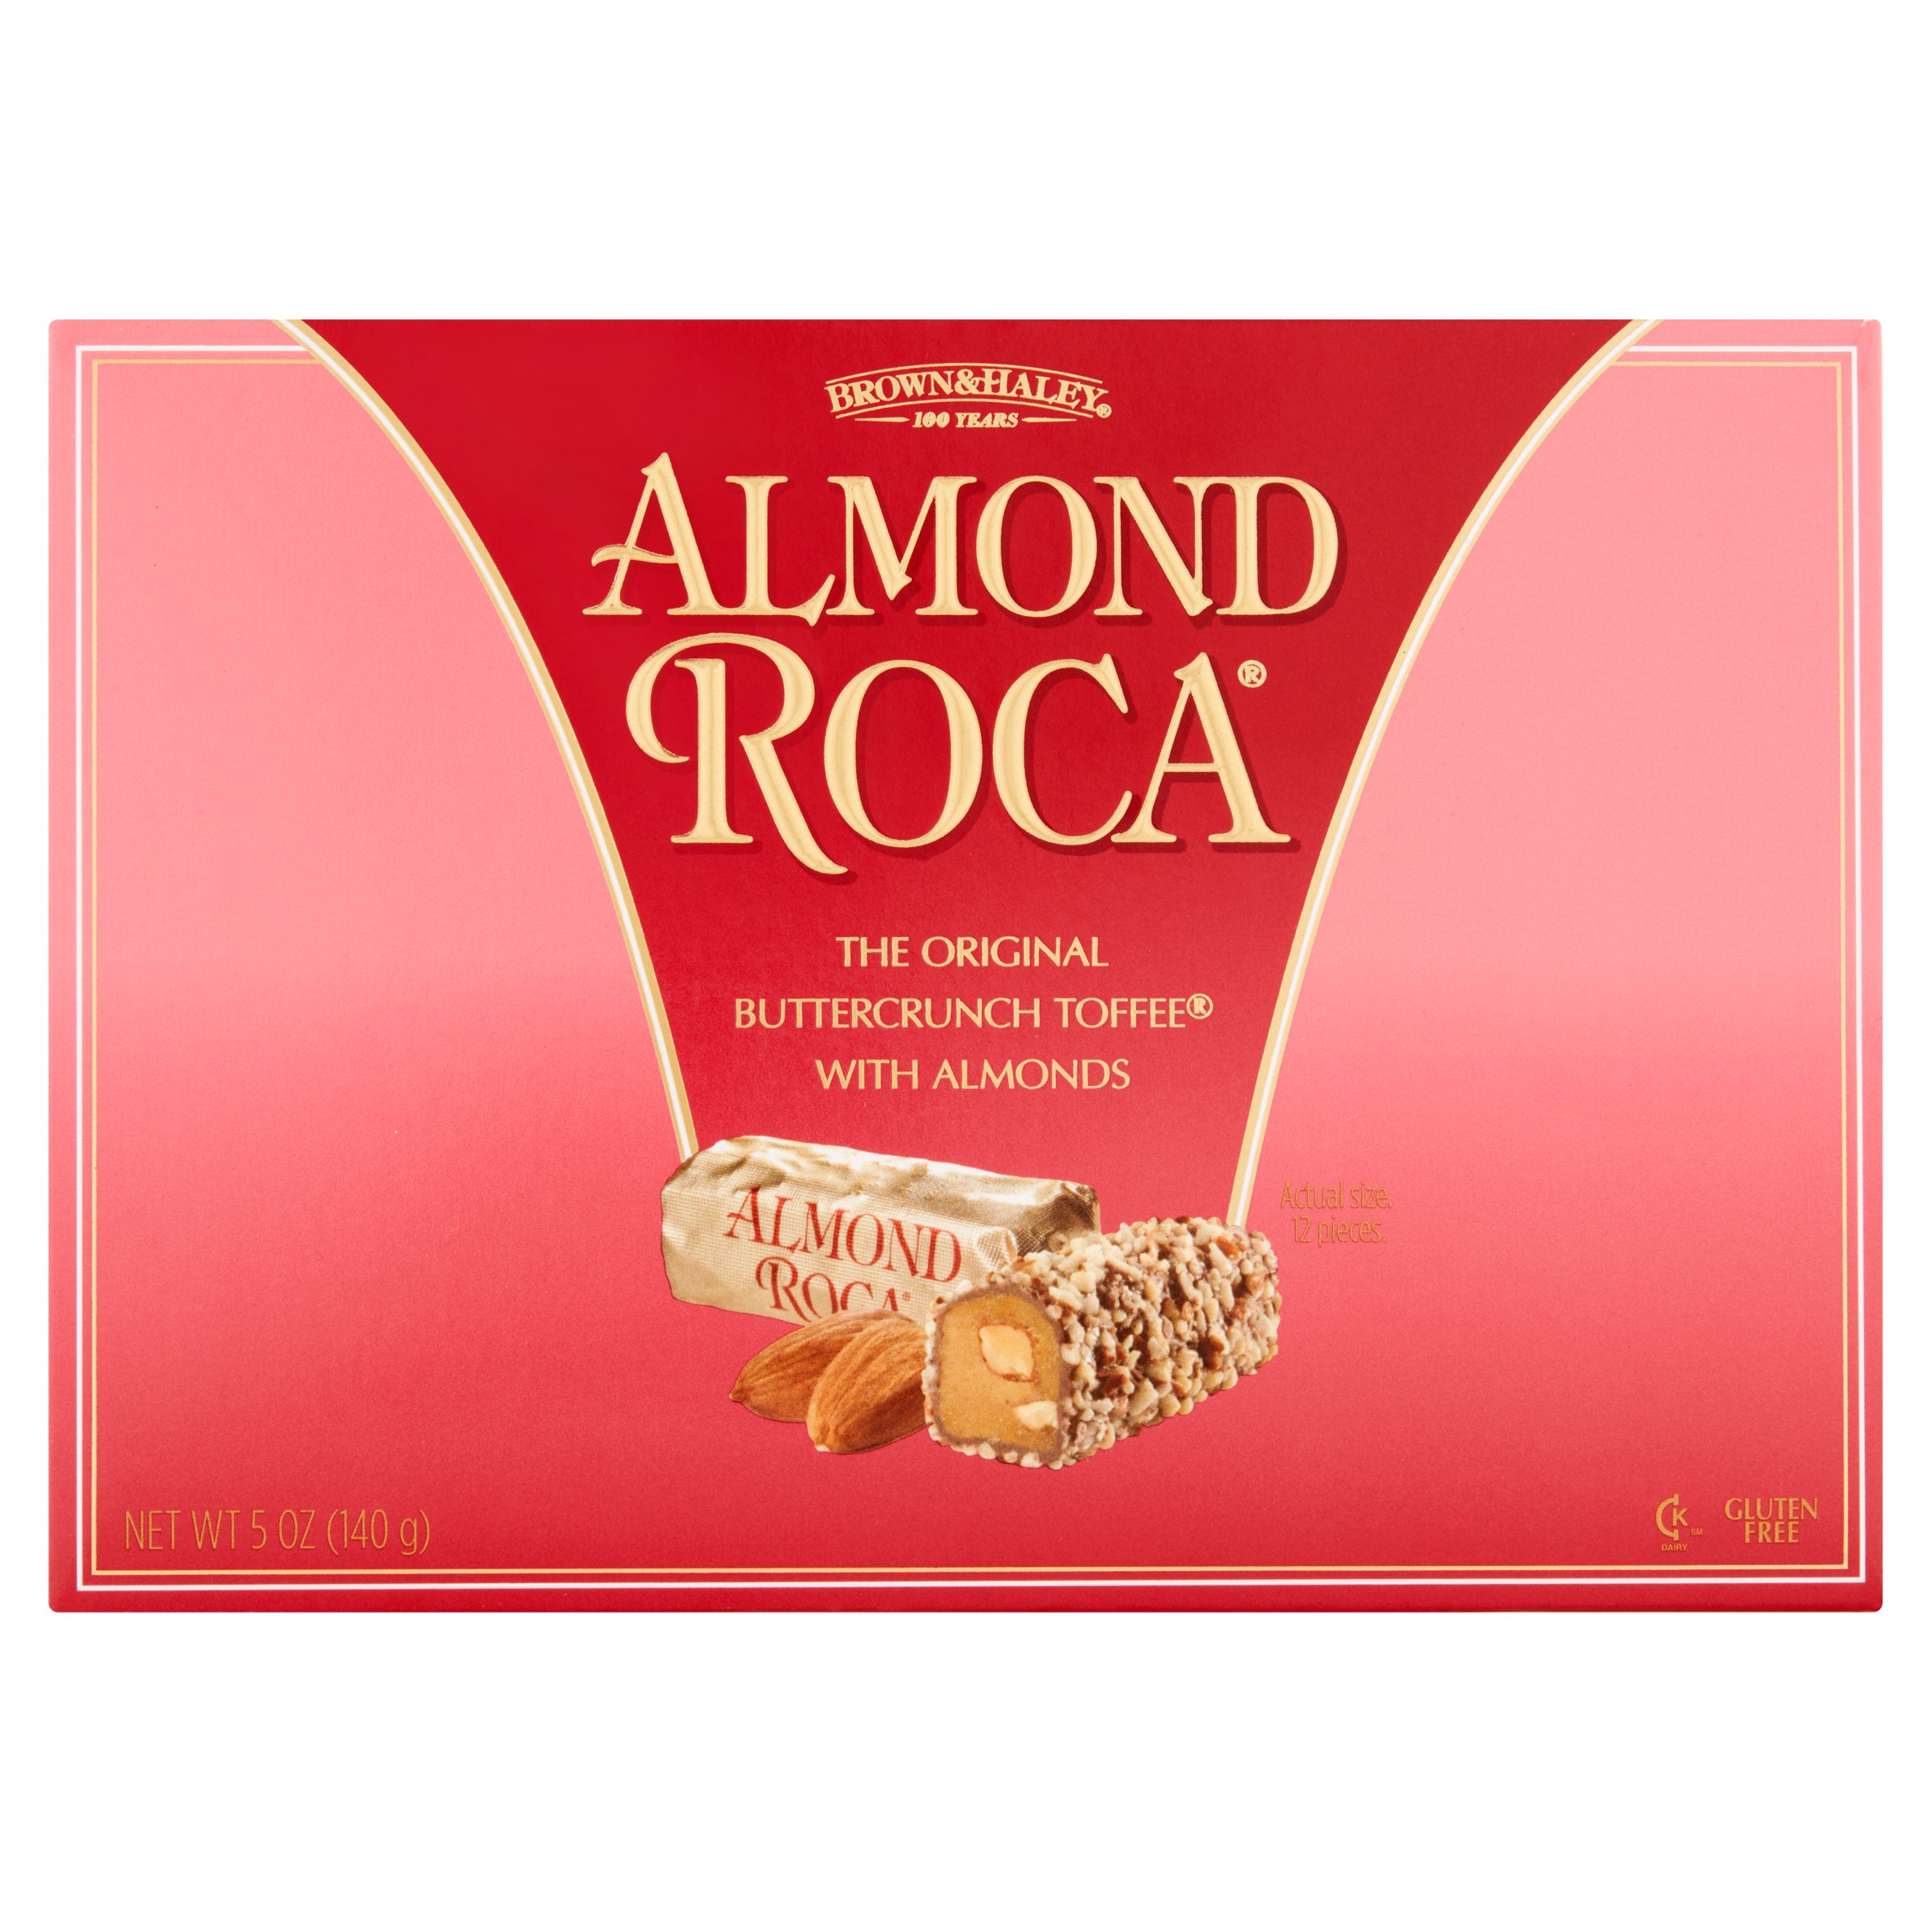 Brown & Haley Almond Roca The Original Buttercrunch Toffee with Almonds, 5 oz by Brown & Haley